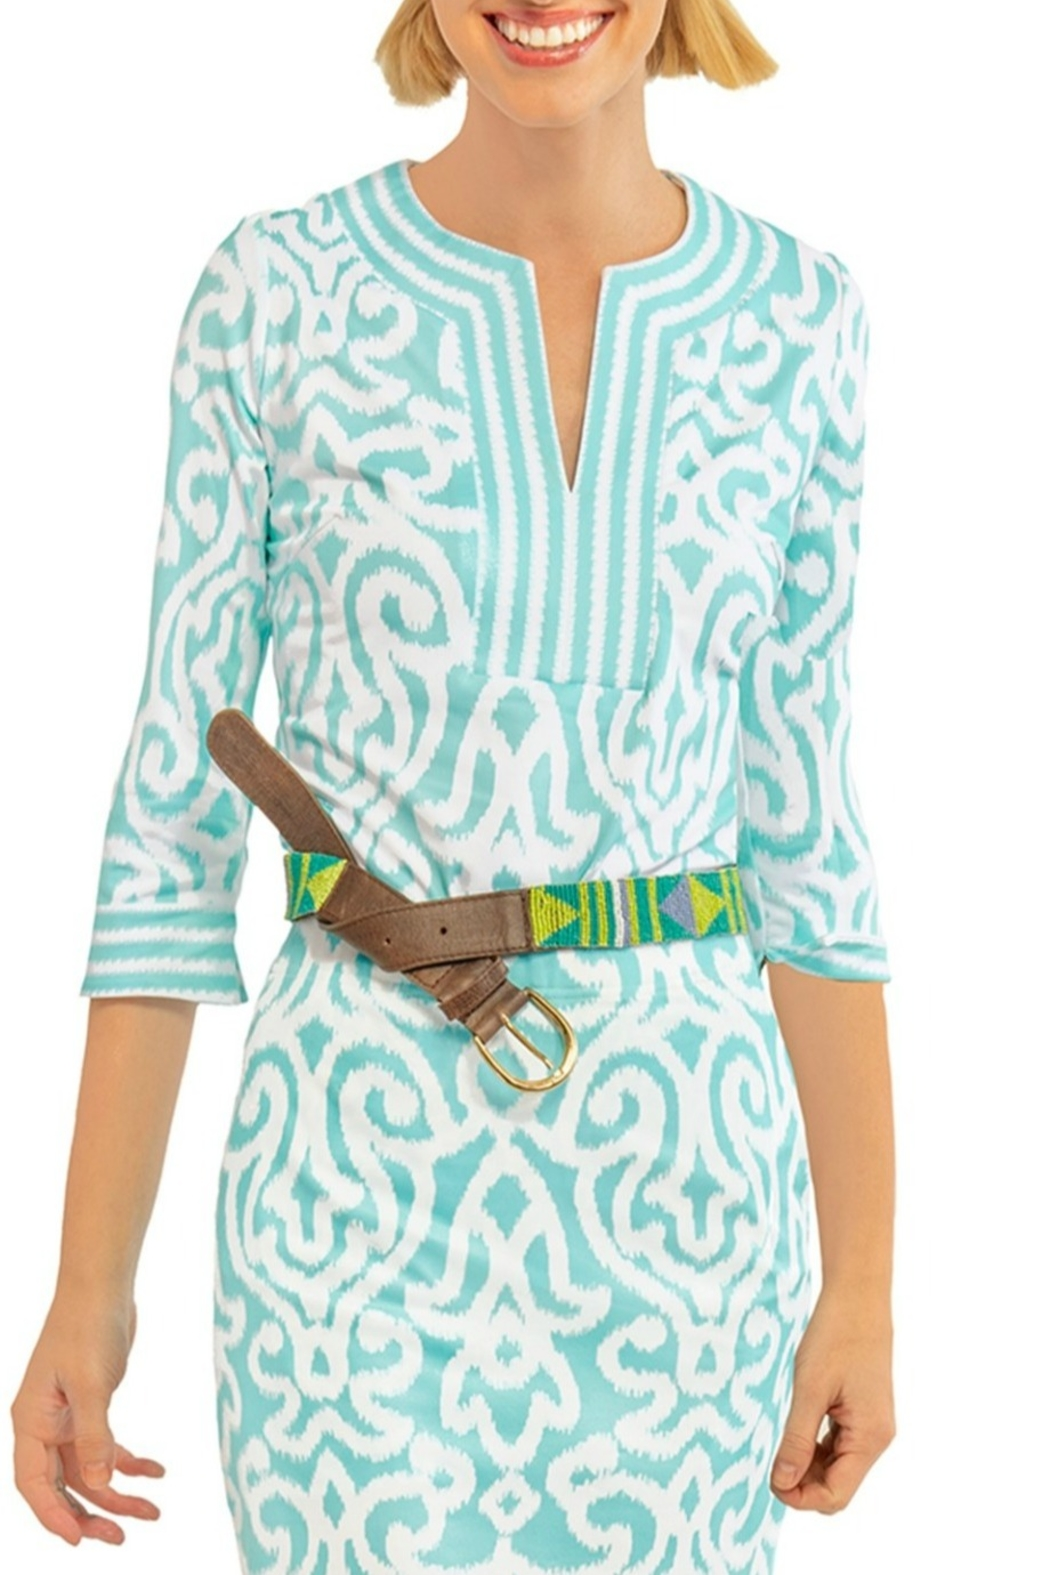 Gretchen Scott Arabesque Jersey Tunic - Main Image